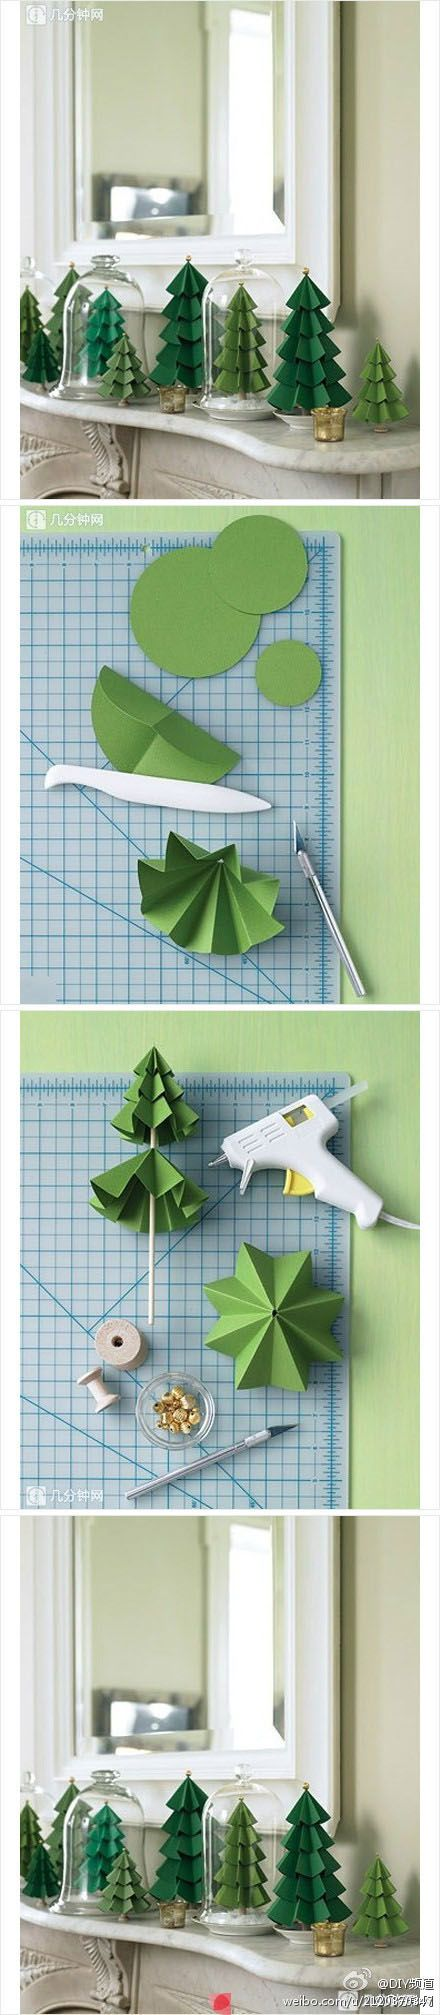 Paper Christmas tree craft tutorial